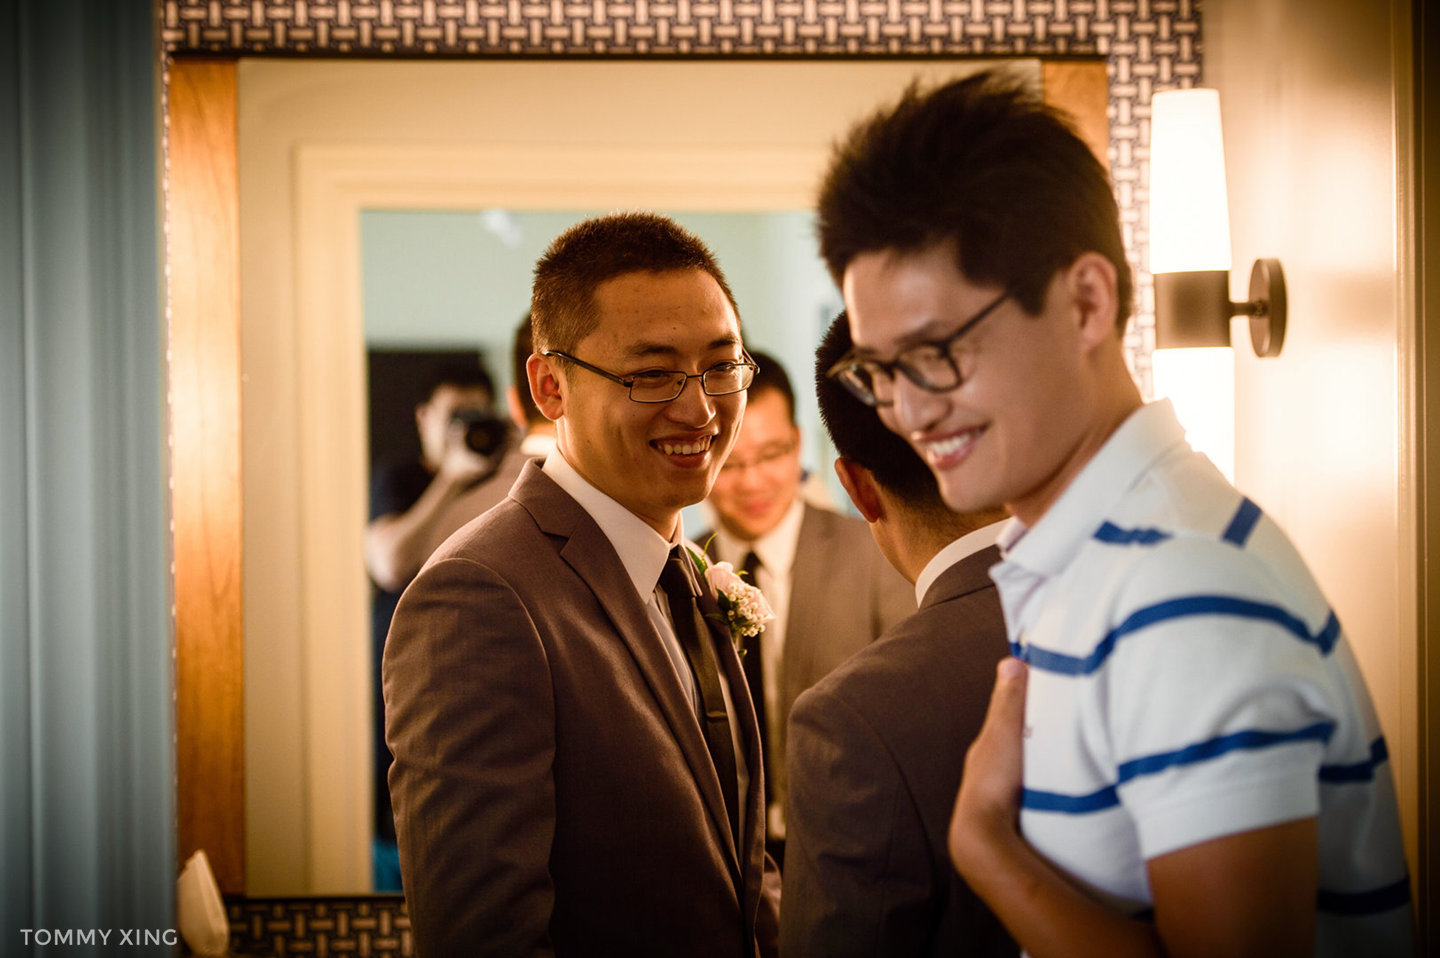 Paradise Point Resort Wedding Xiaolu & Bin San Diego 圣地亚哥婚礼摄影跟拍 Tommy Xing Photography 洛杉矶婚礼婚纱照摄影师 023.jpg